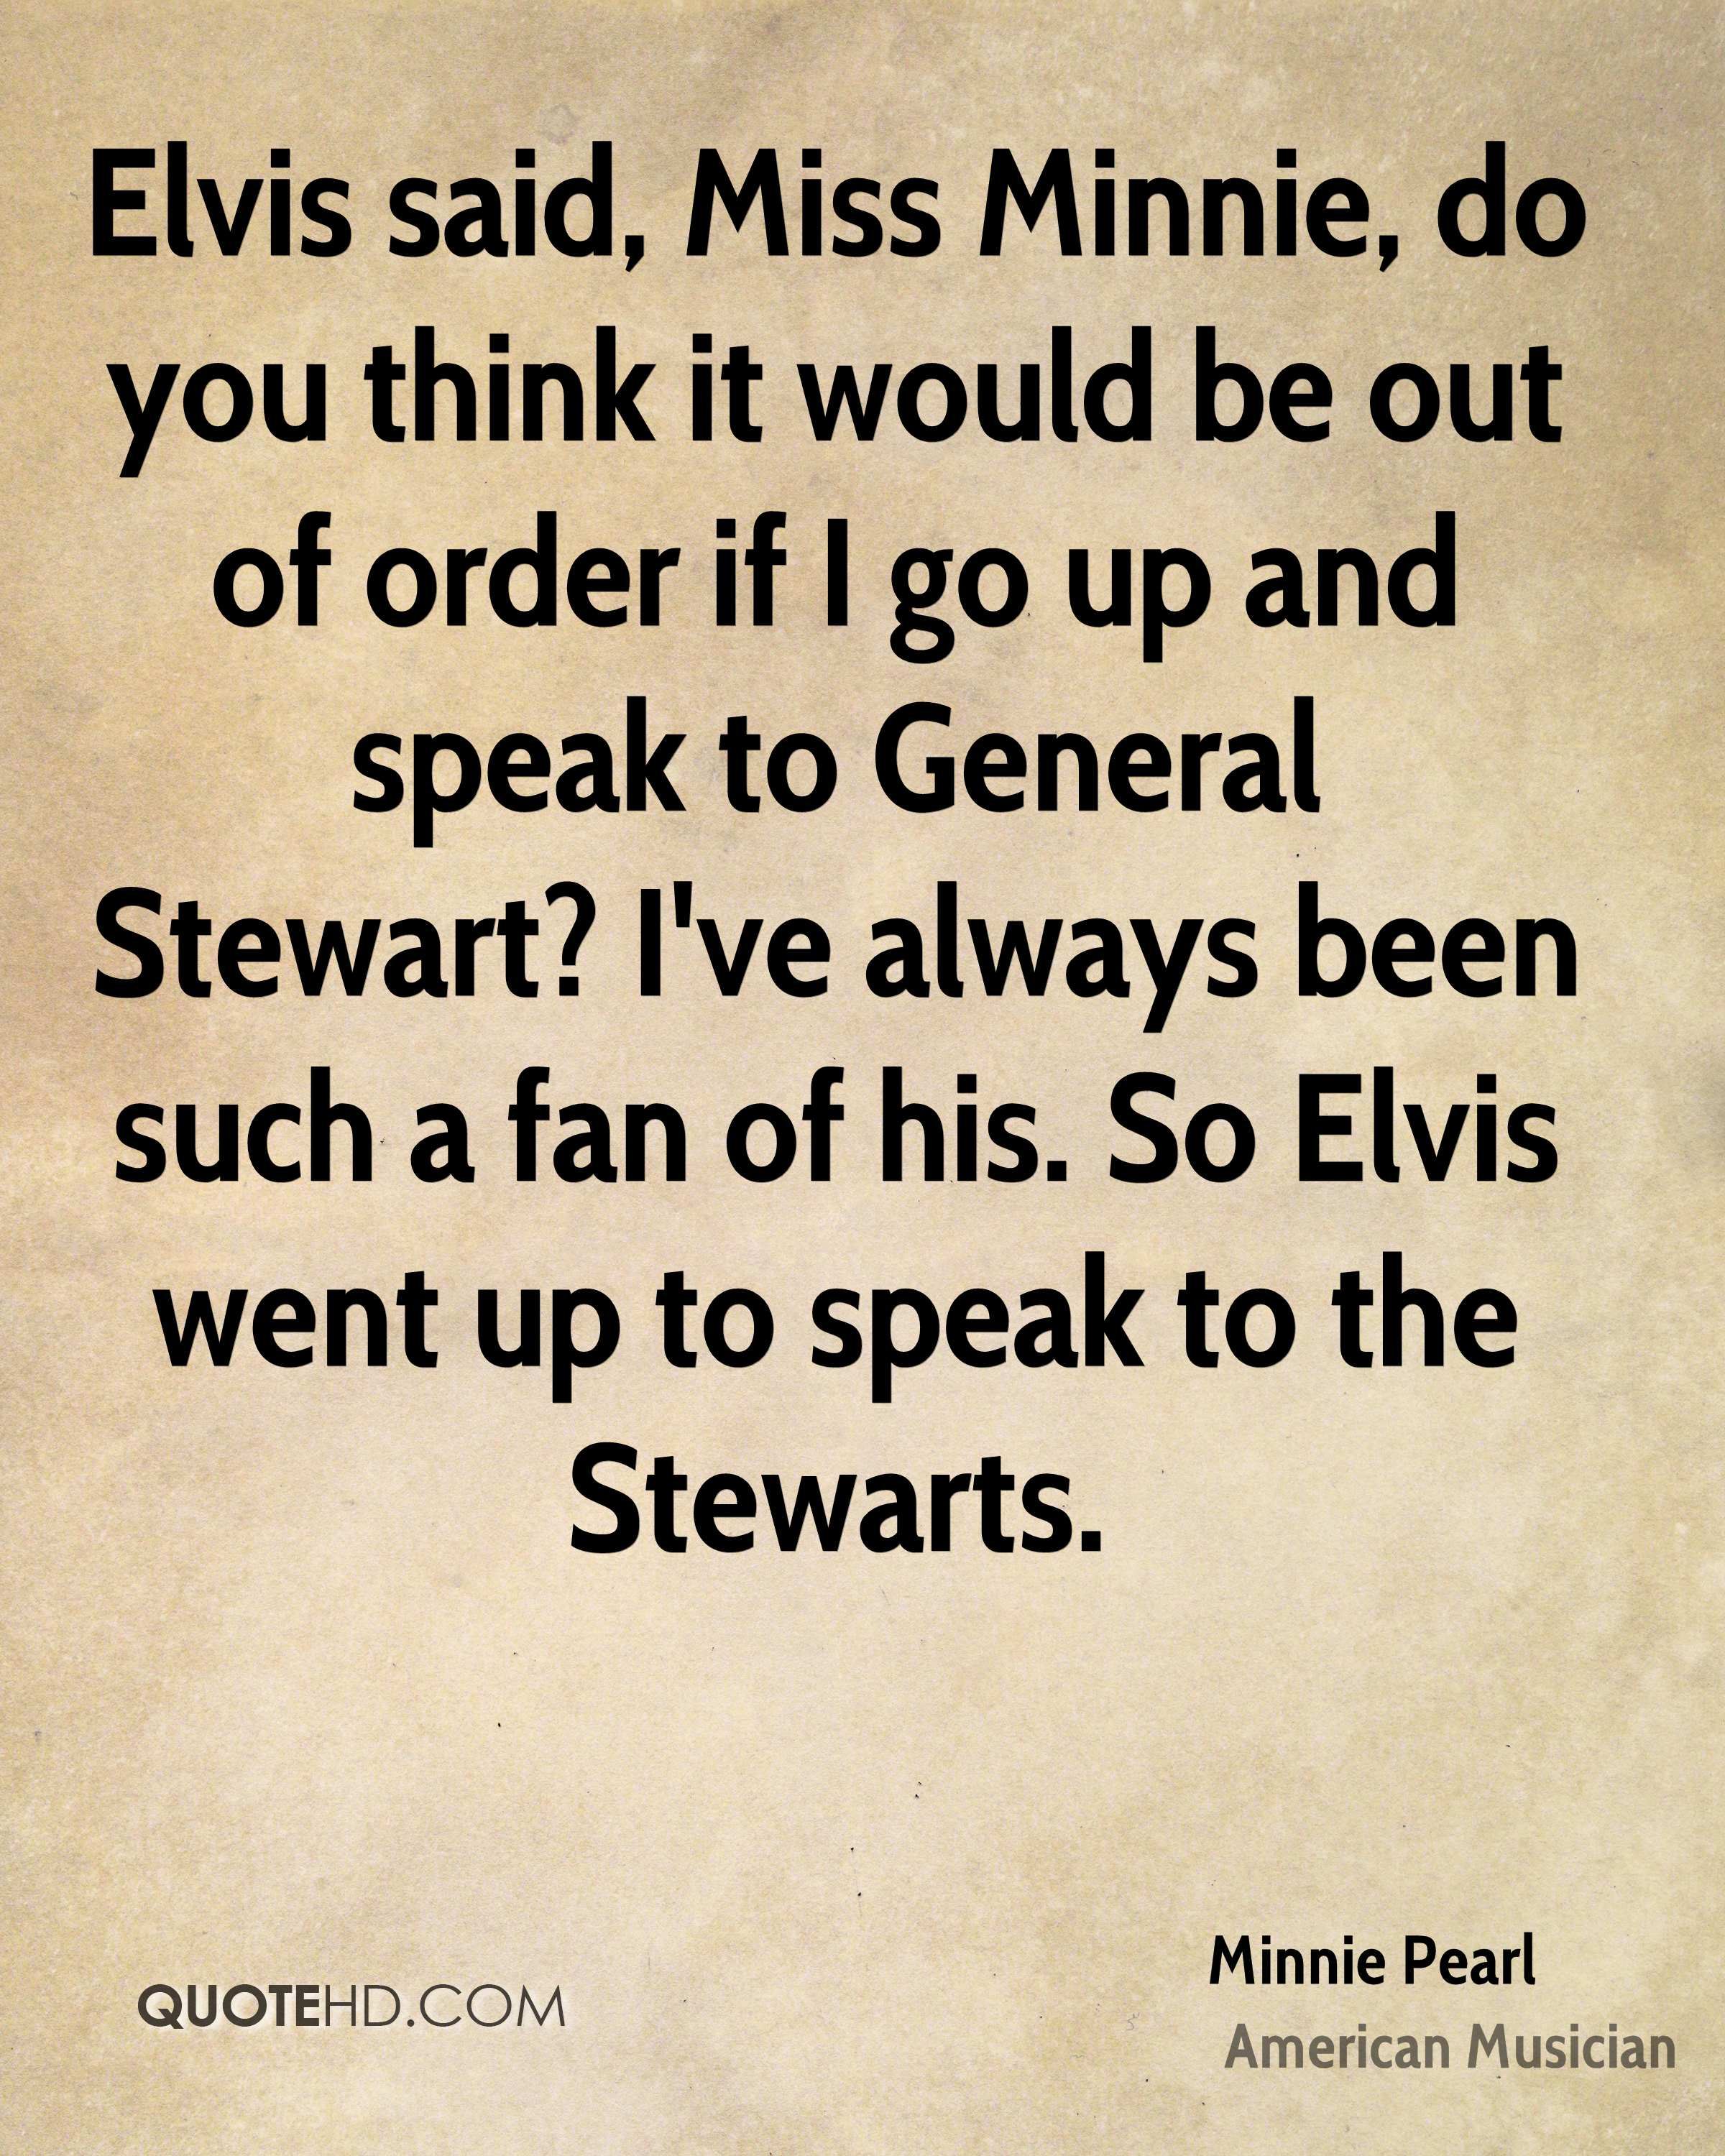 Elvis said, Miss Minnie, do you think it would be out of order if I go up and speak to General Stewart? I've always been such a fan of his. So Elvis went up to speak to the Stewarts.